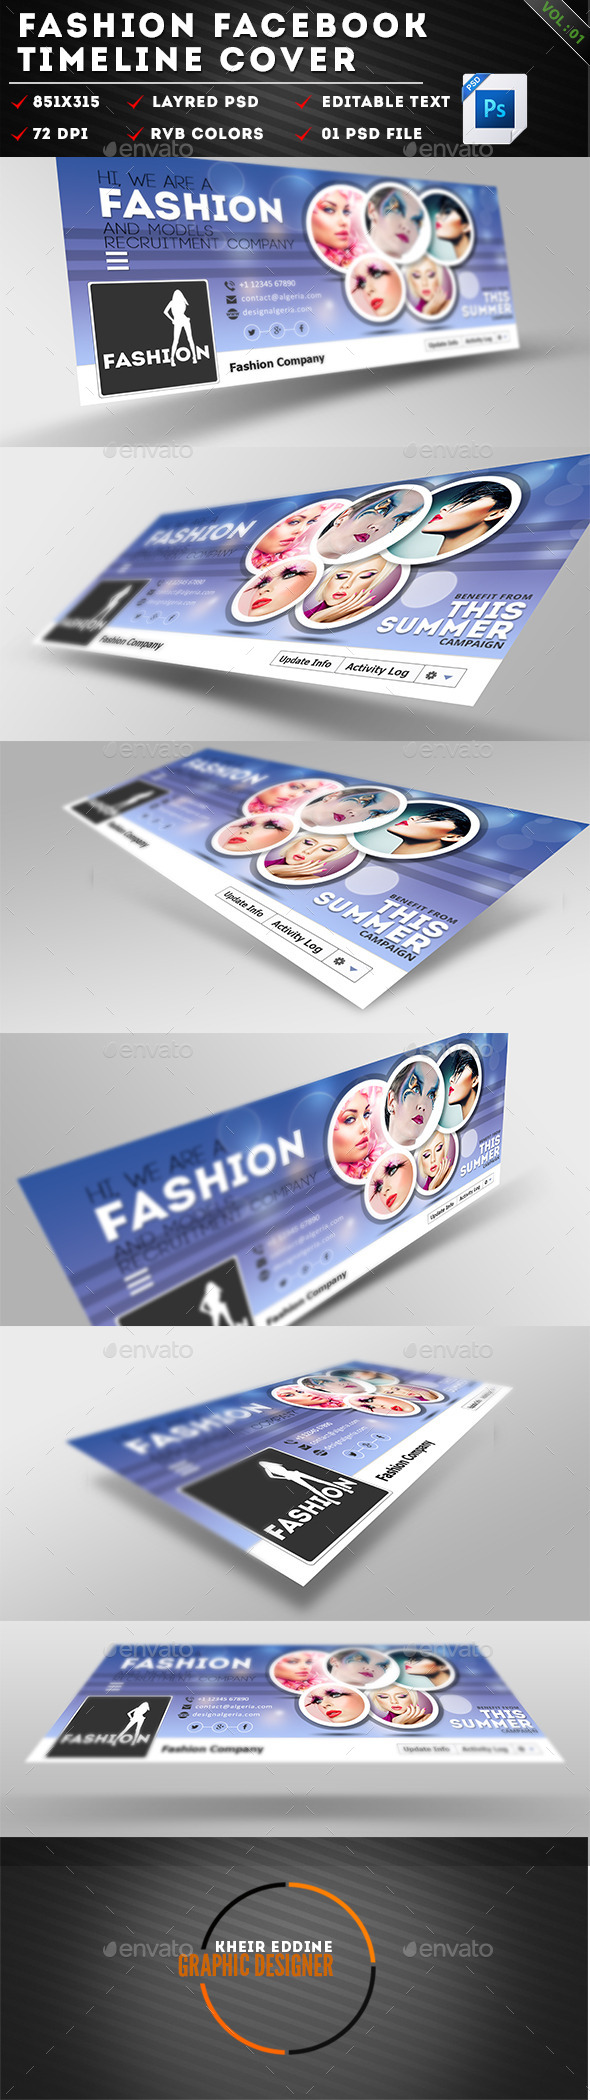 GraphicRiver Fashion Facebook Timeline Cover Vol 01 11065063